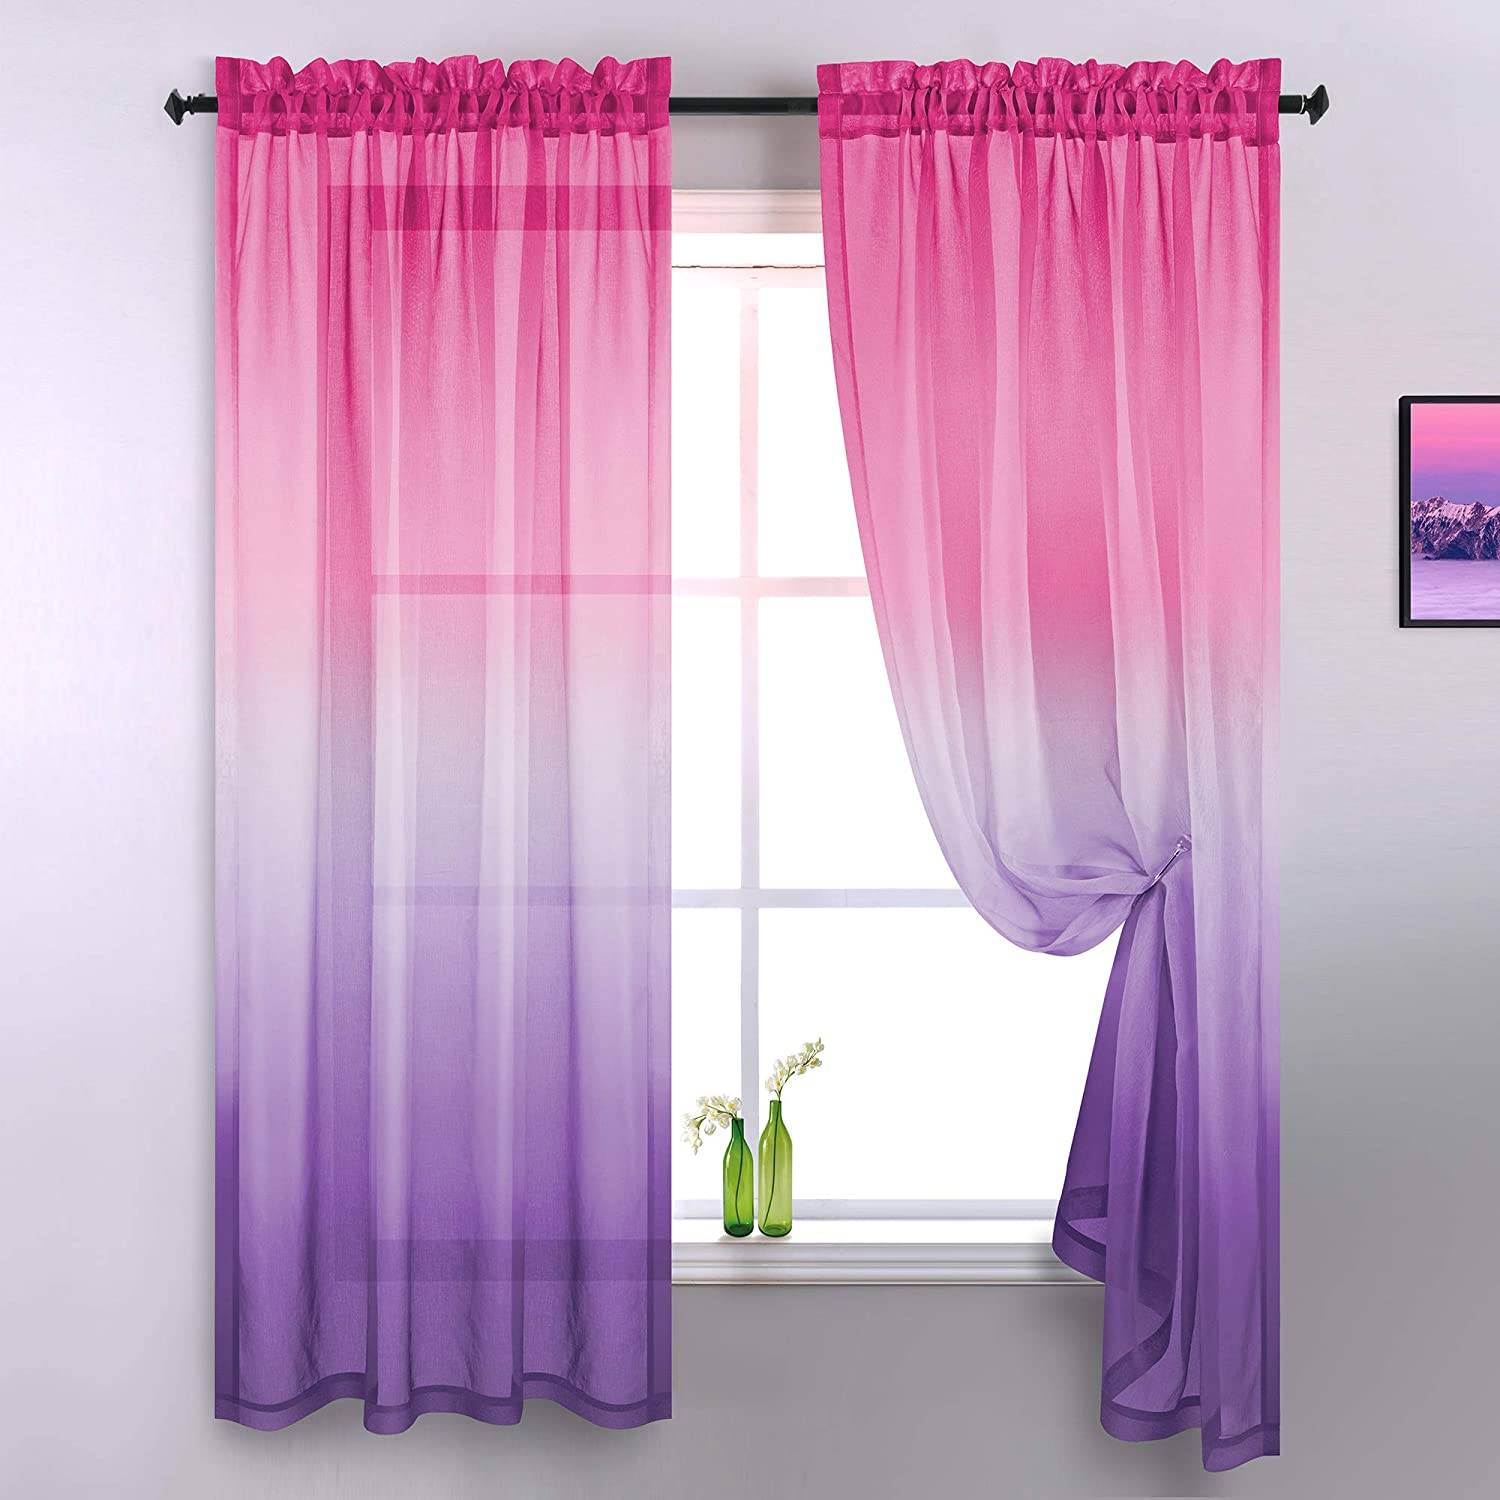 Green bottles with flowers on window having pink and purple curtain